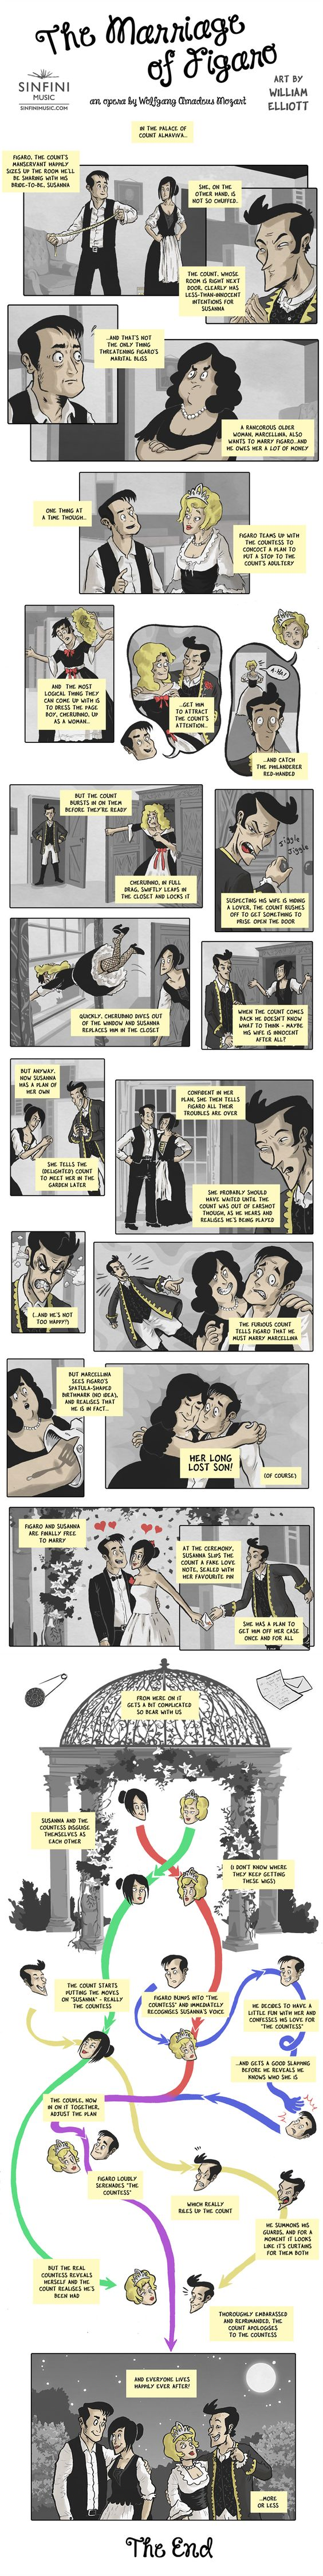 marriage-of-figaro-comic-strip